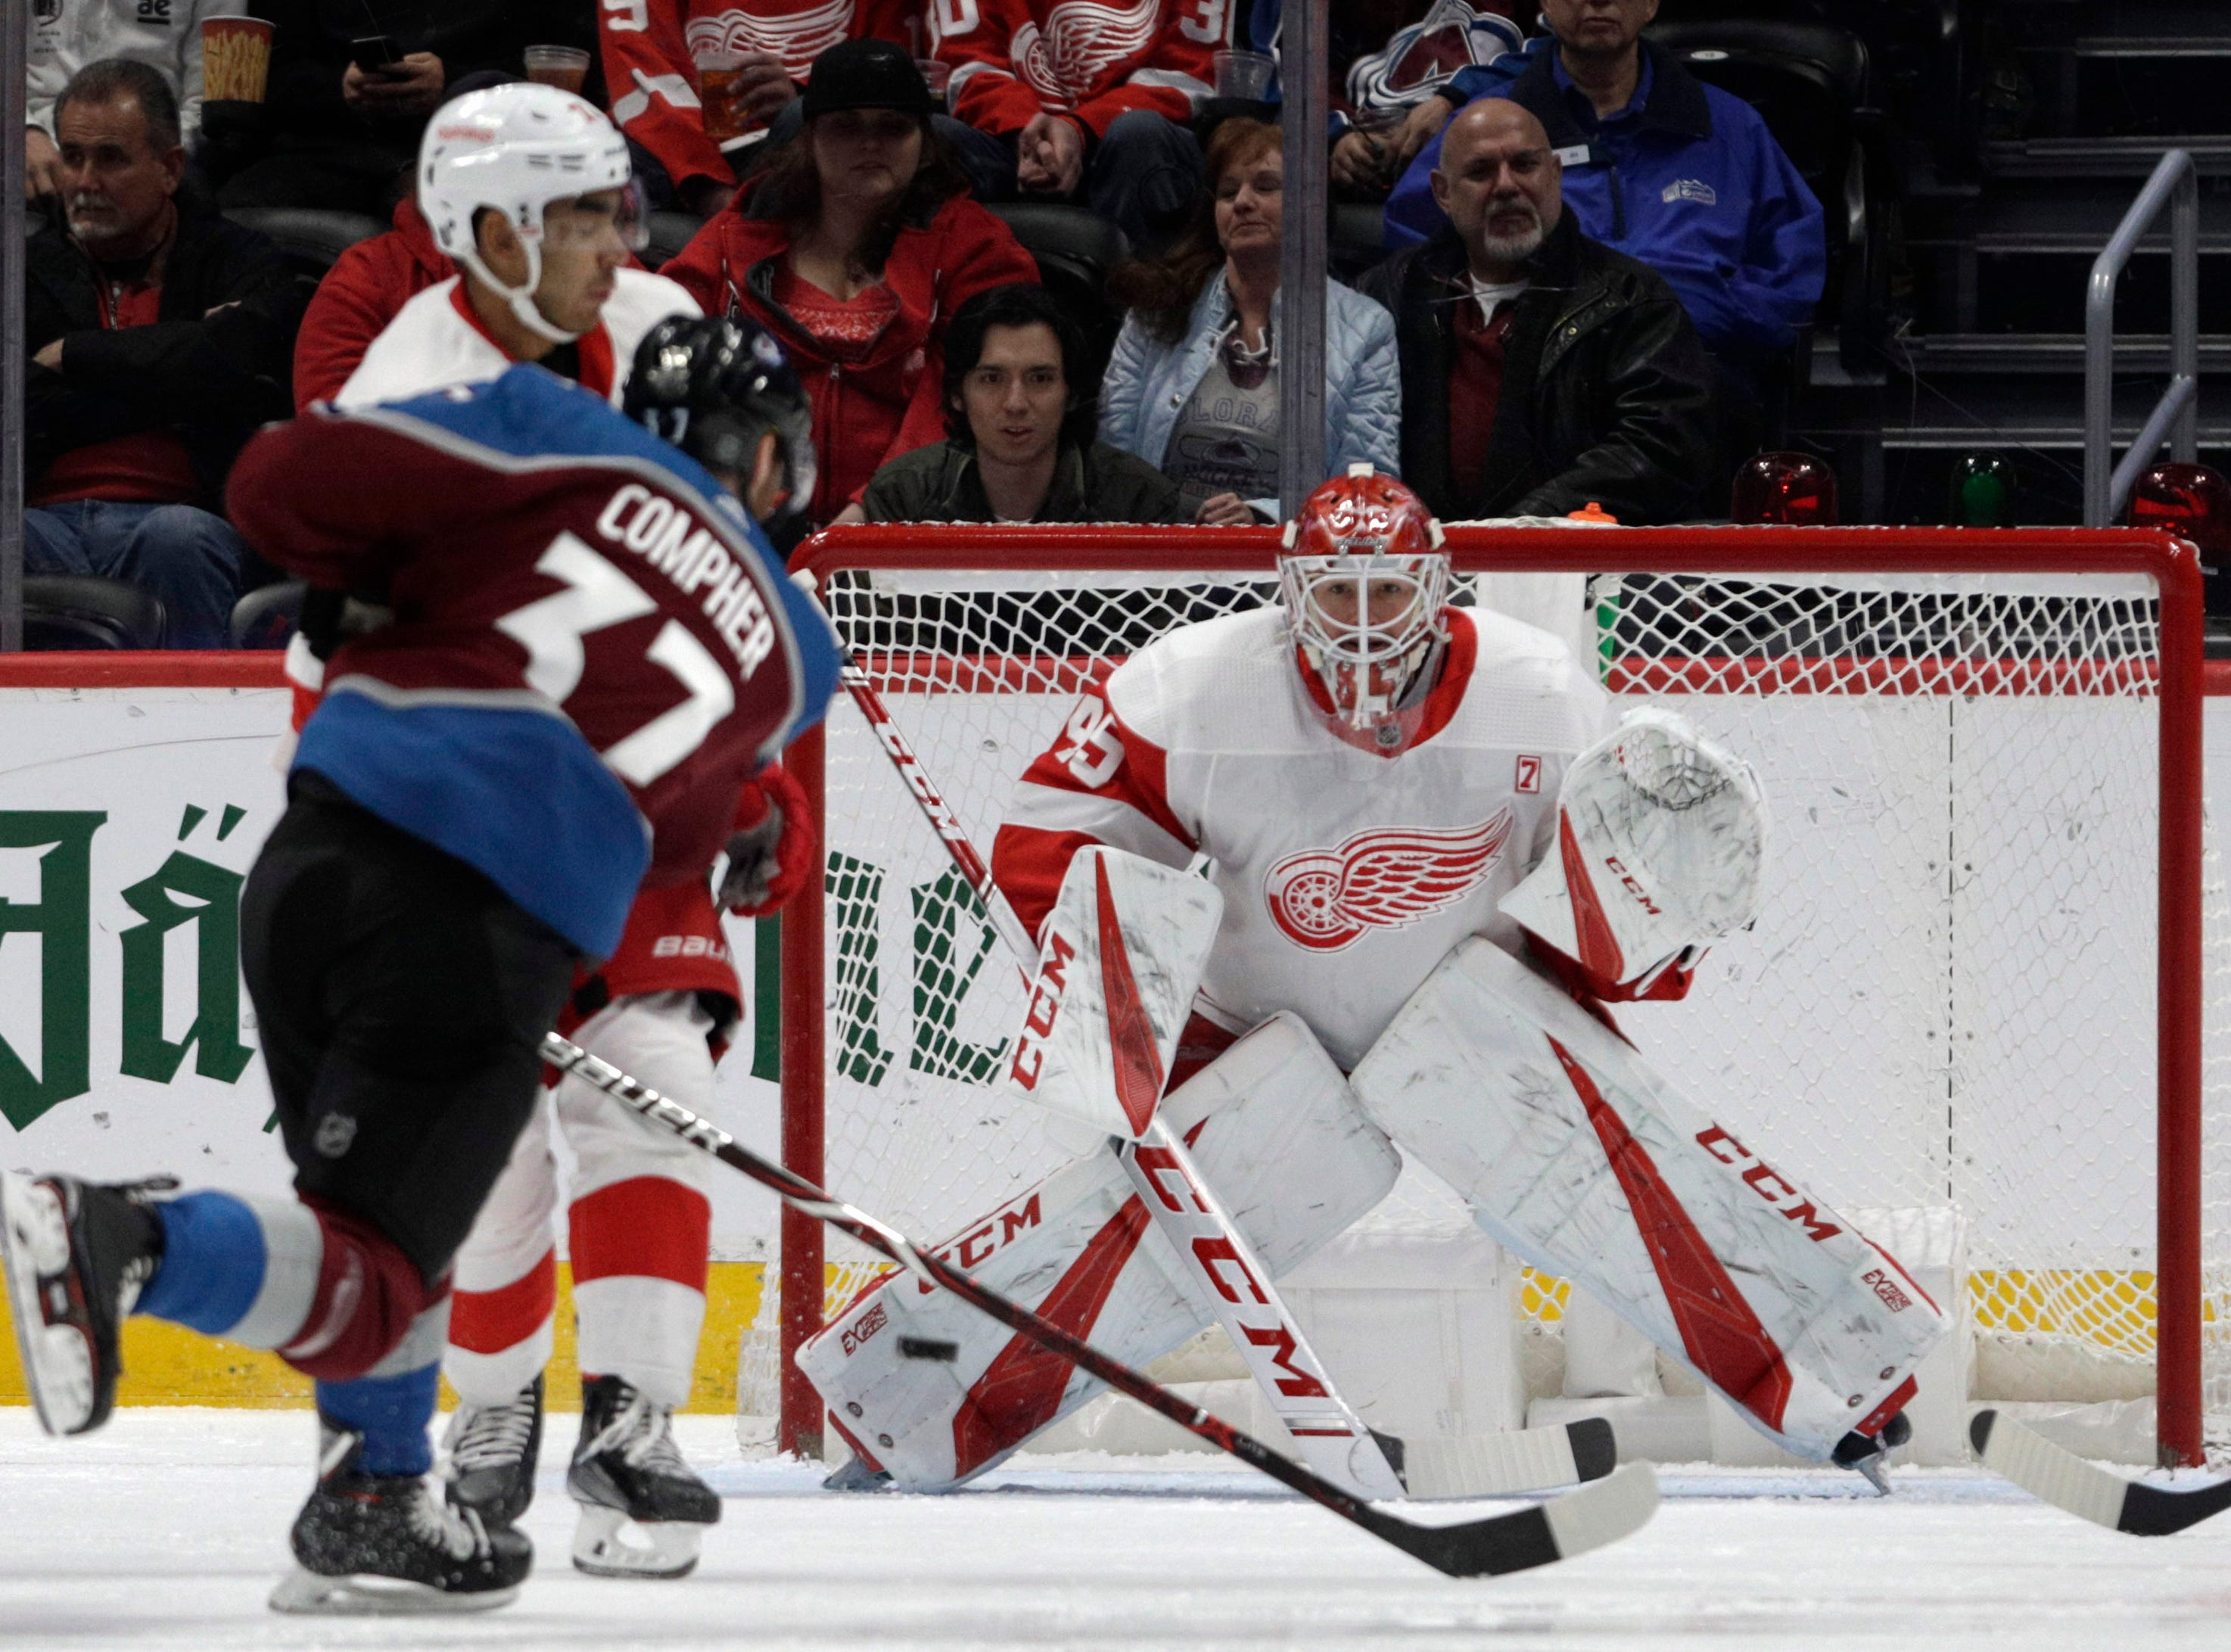 Colorado Avalanche left wing J.T. Compher (37) scores a goal against Detroit Red Wings goaltender Jonathan Bernier (45) during the second period of an NHL hockey game in Denver, Tuesday, March 5, 2019.